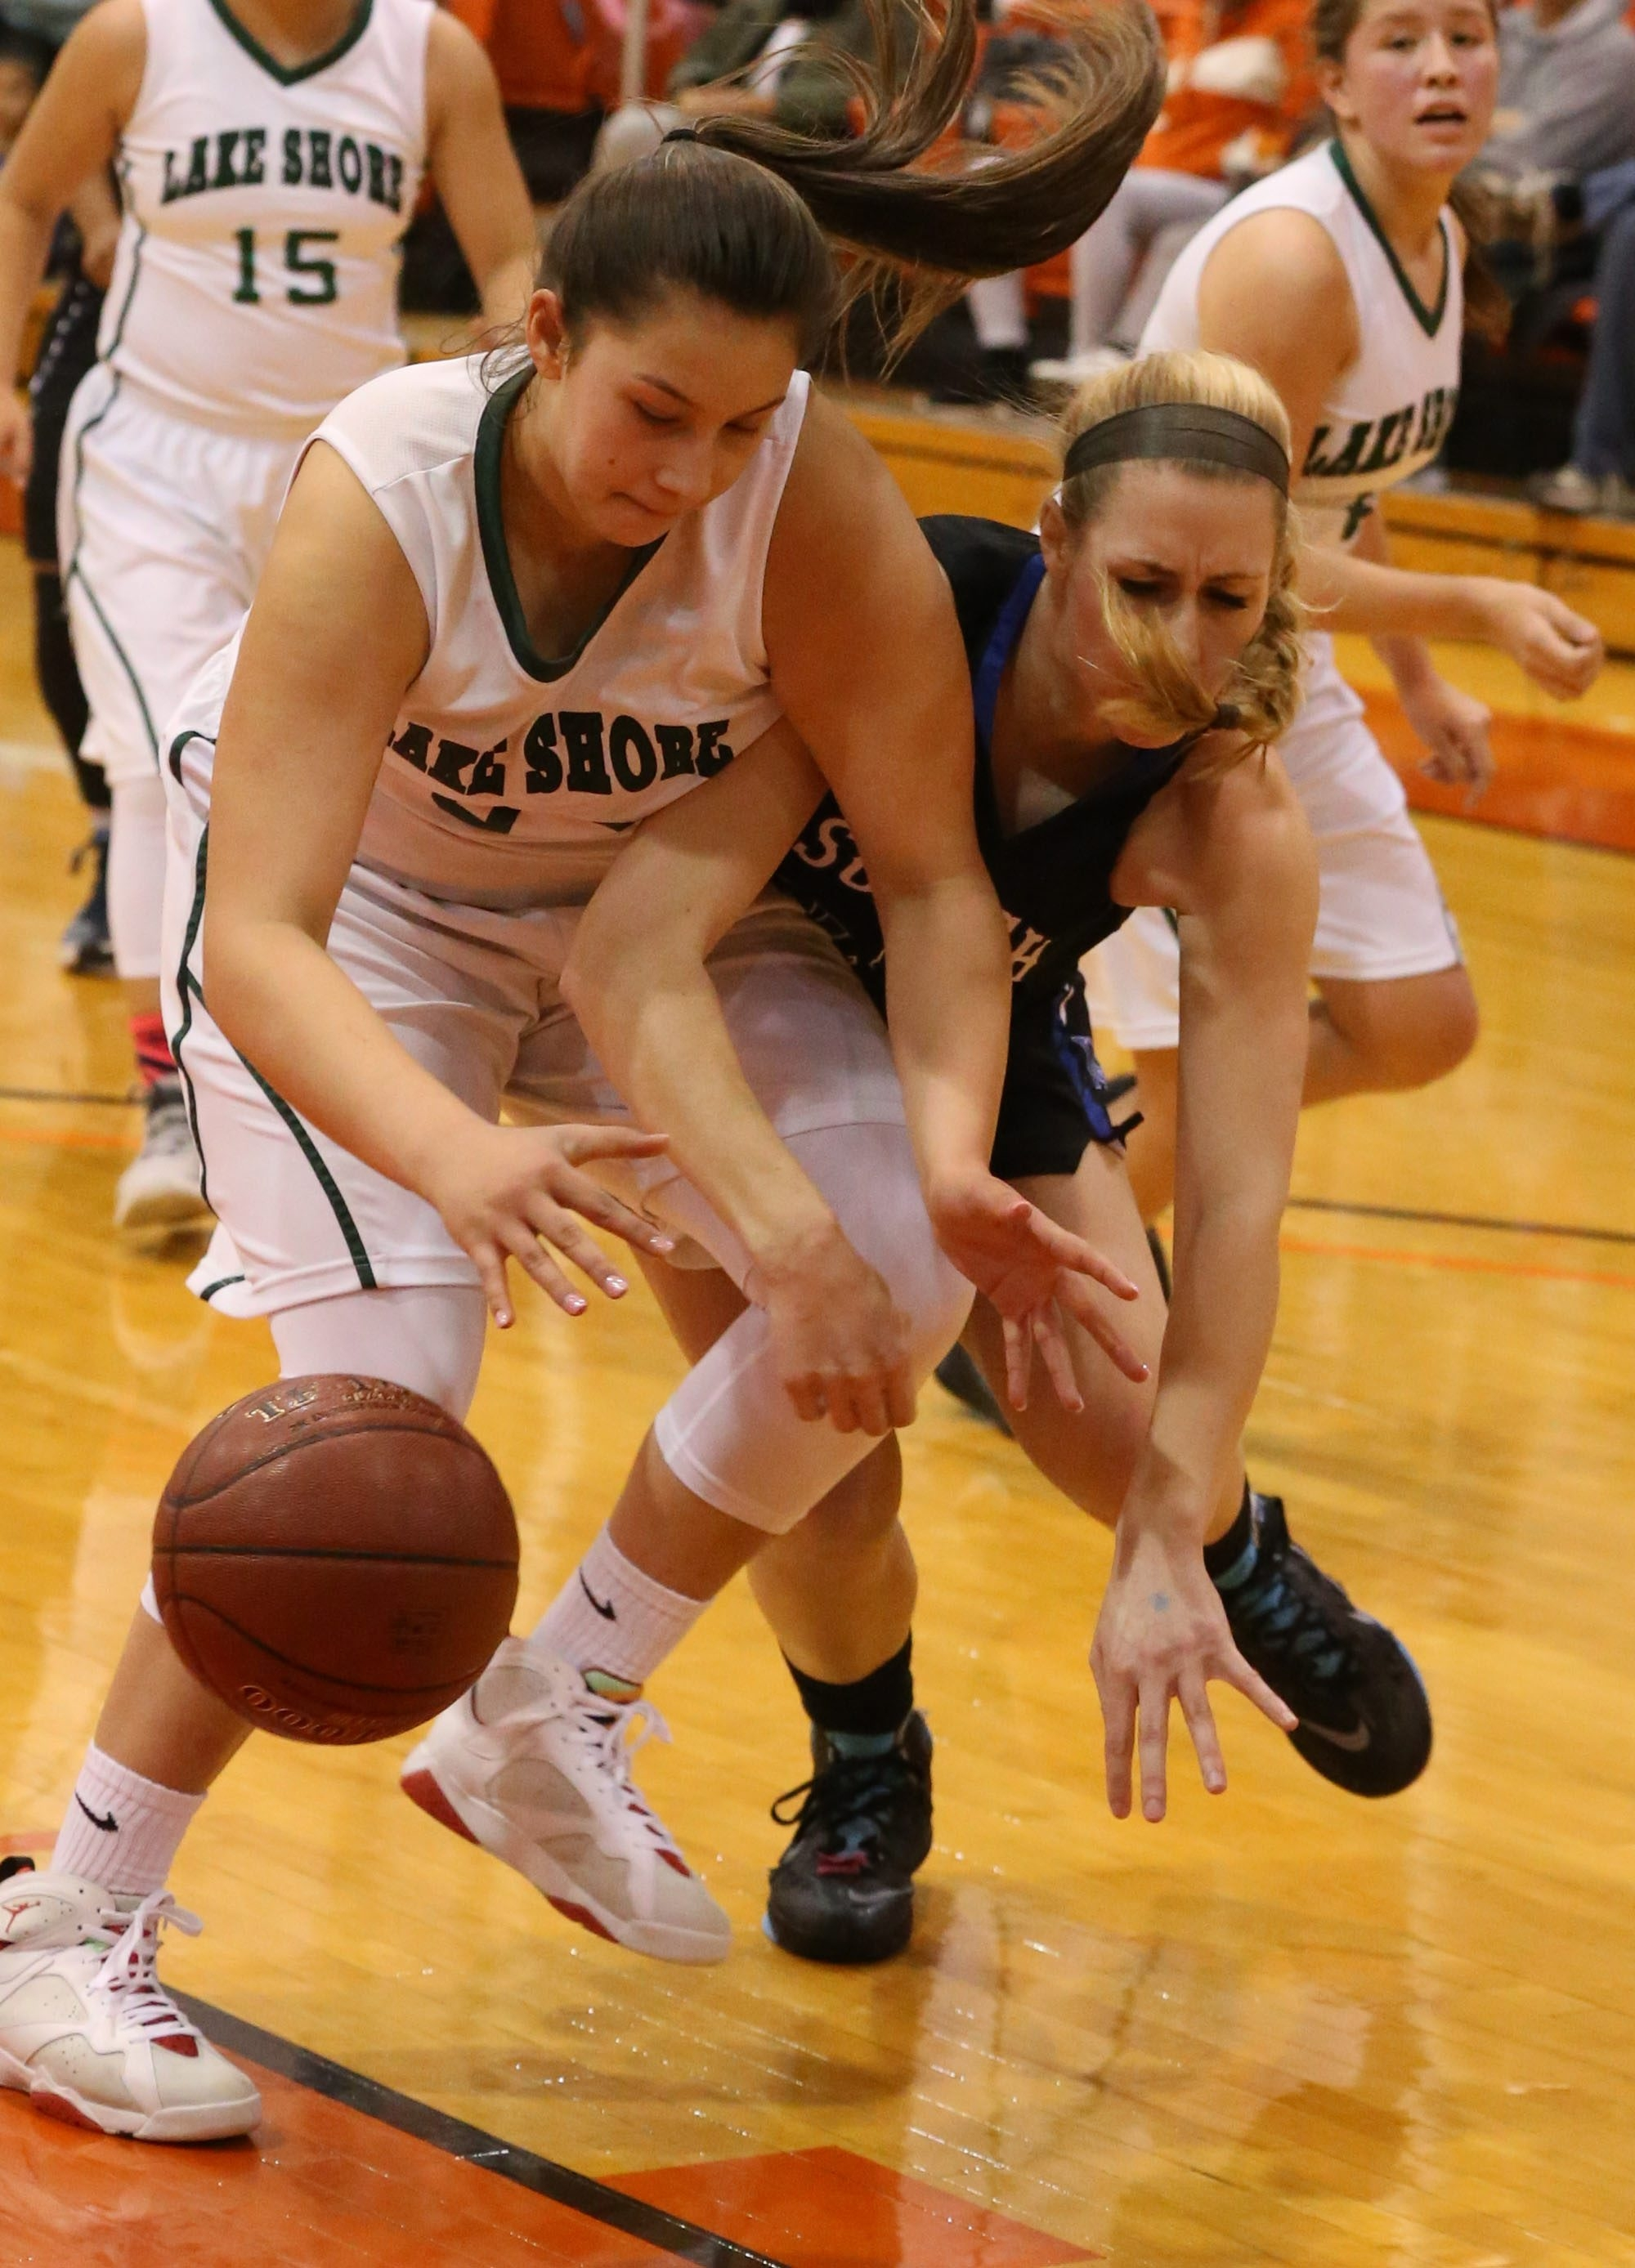 Lake Shore's Shayla Scanlan, left, battles Williamsville South's Brianna Neeley for the ball in the first half.